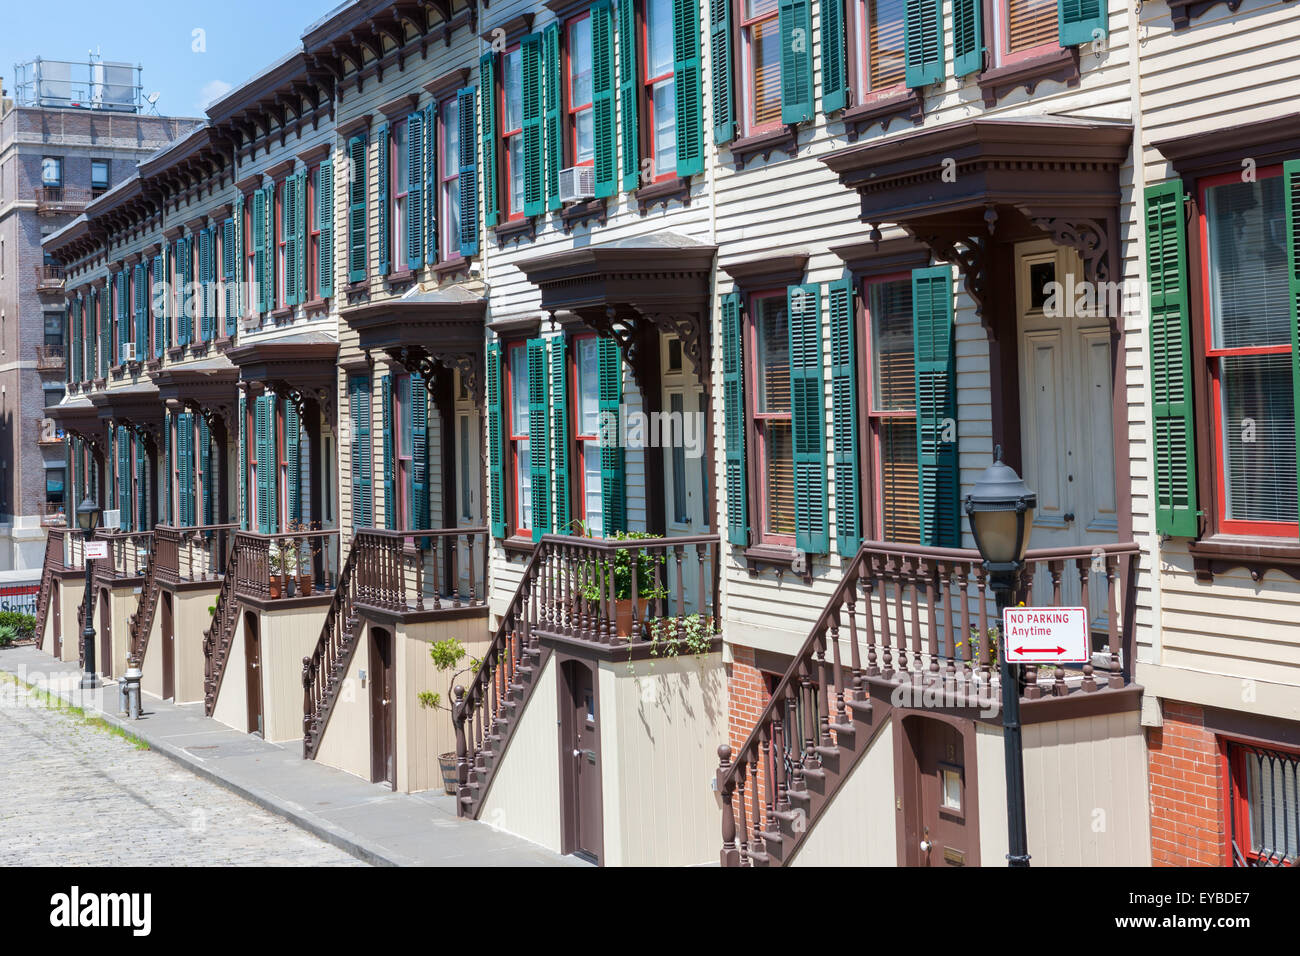 The historic Sylvan Terrace rowhouses in the Jumel Terrace Historic District in Washington Heights, Manhattan, New - Stock Image